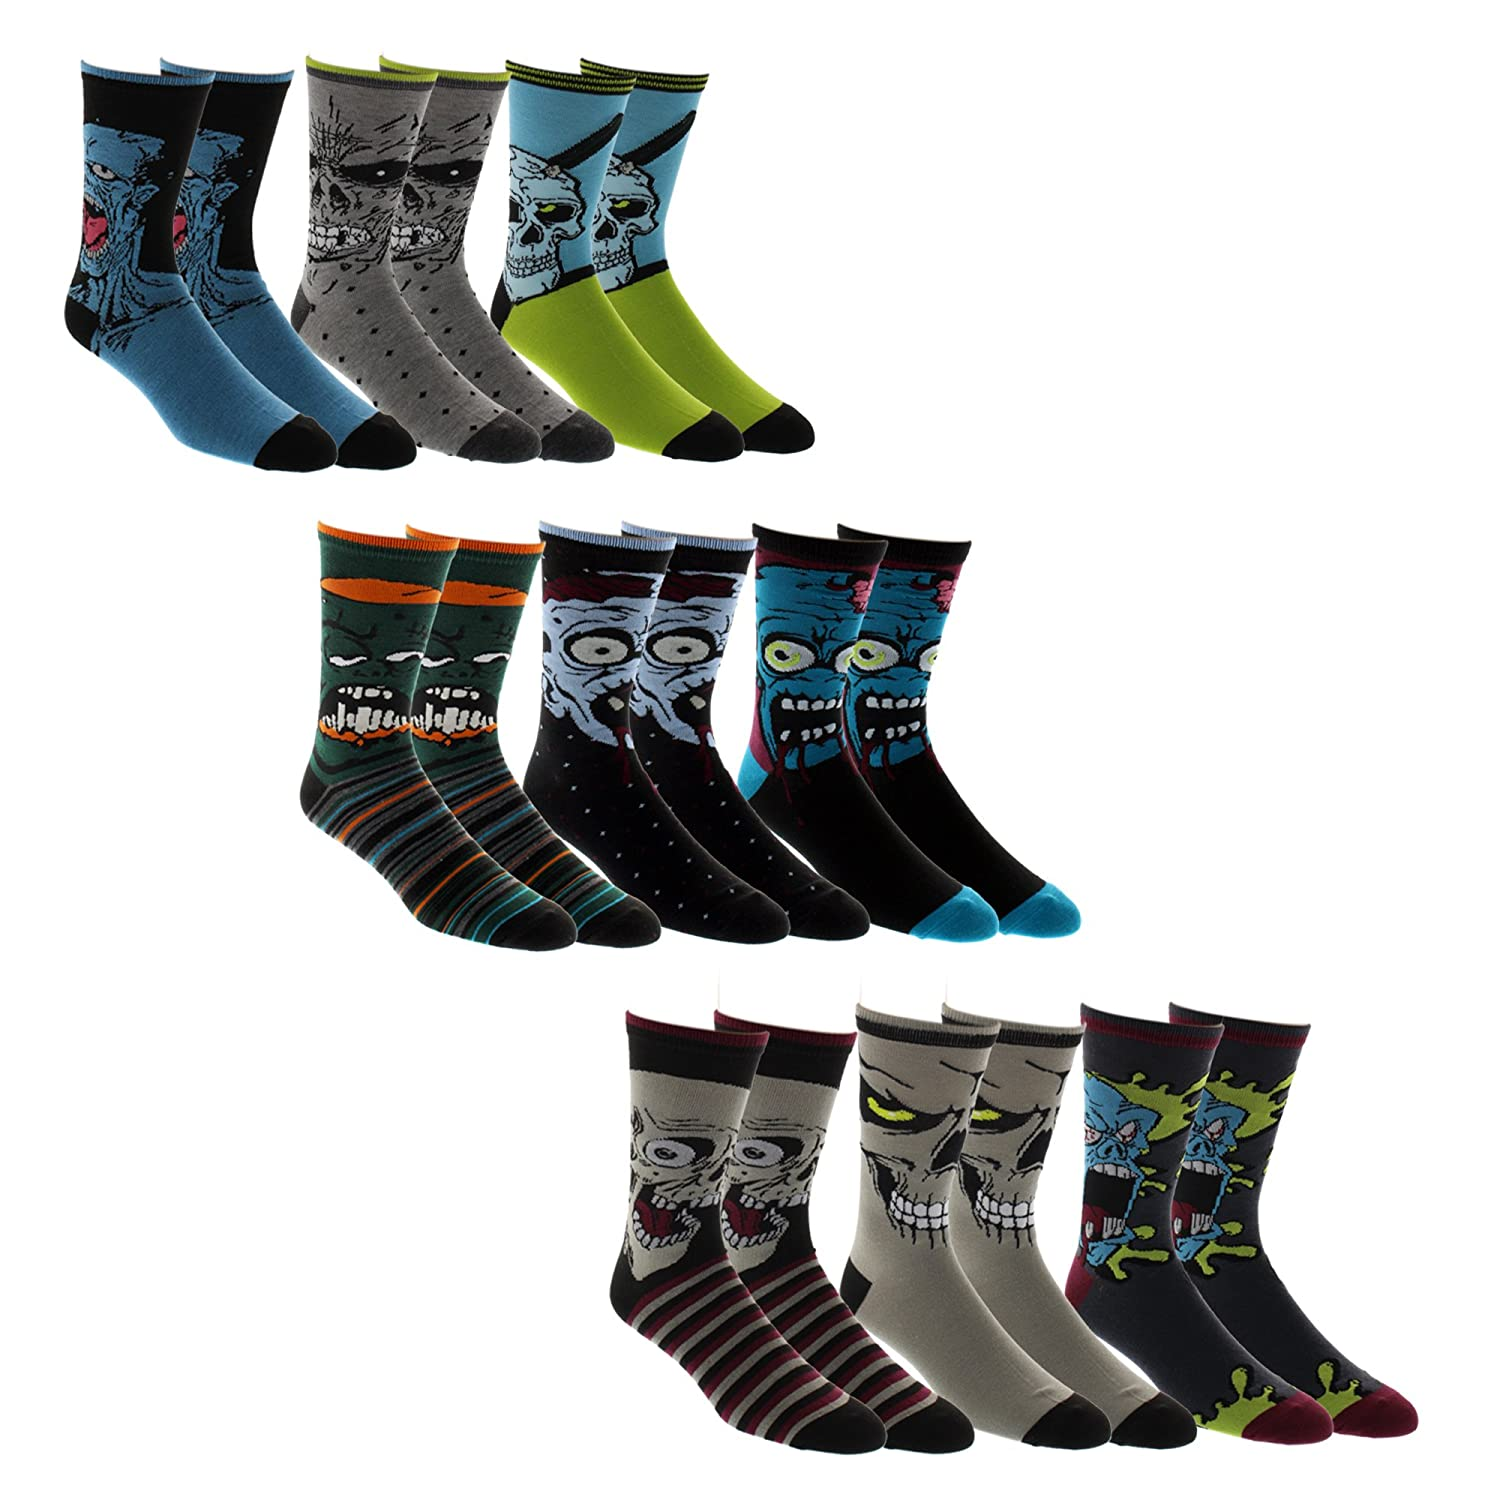 Zombie Socks - Pack of 9 Colorful Zombie Socks - ZombieGift.com